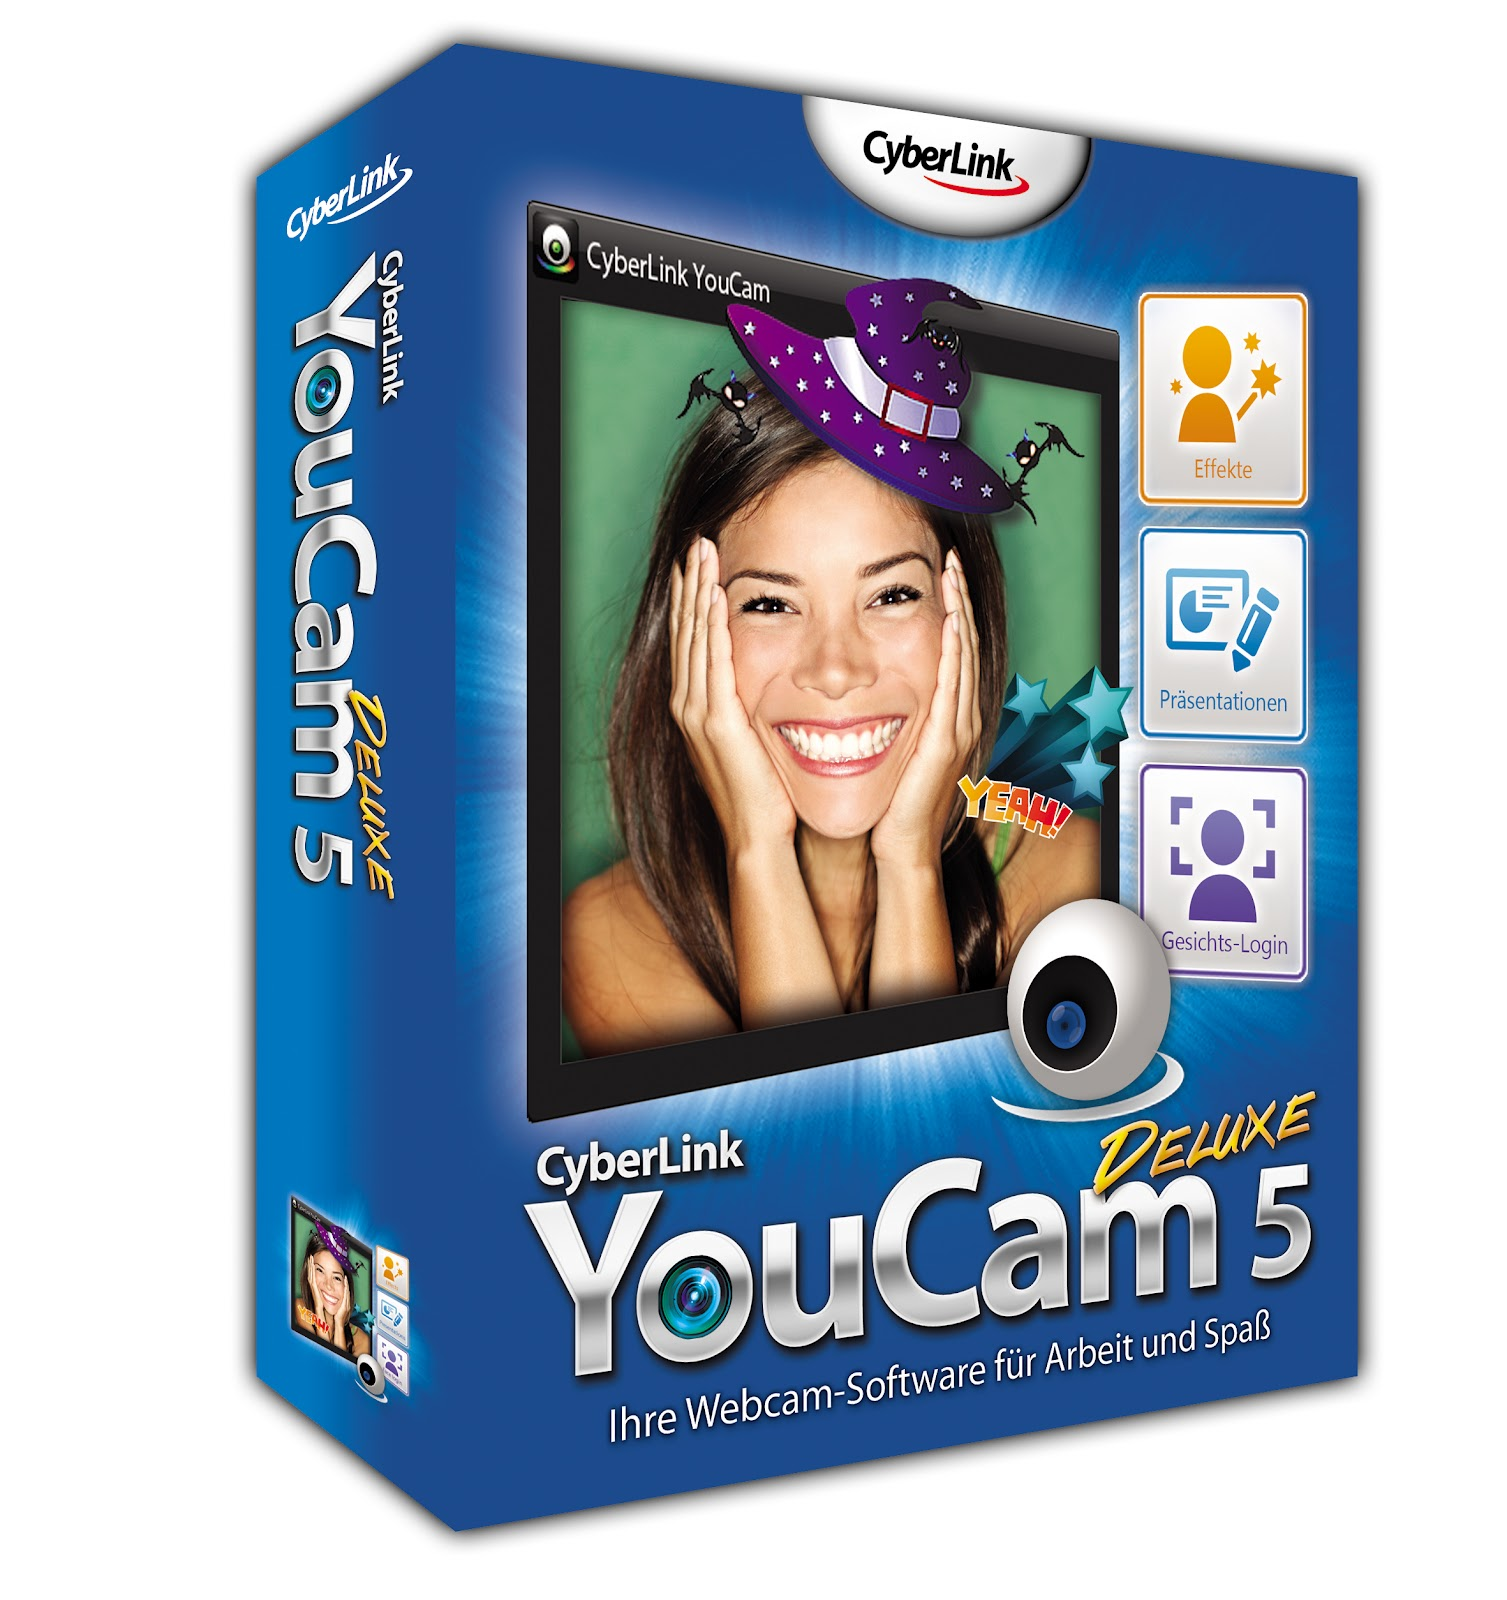 download cyberlink youcam 5 full version free for windows 7